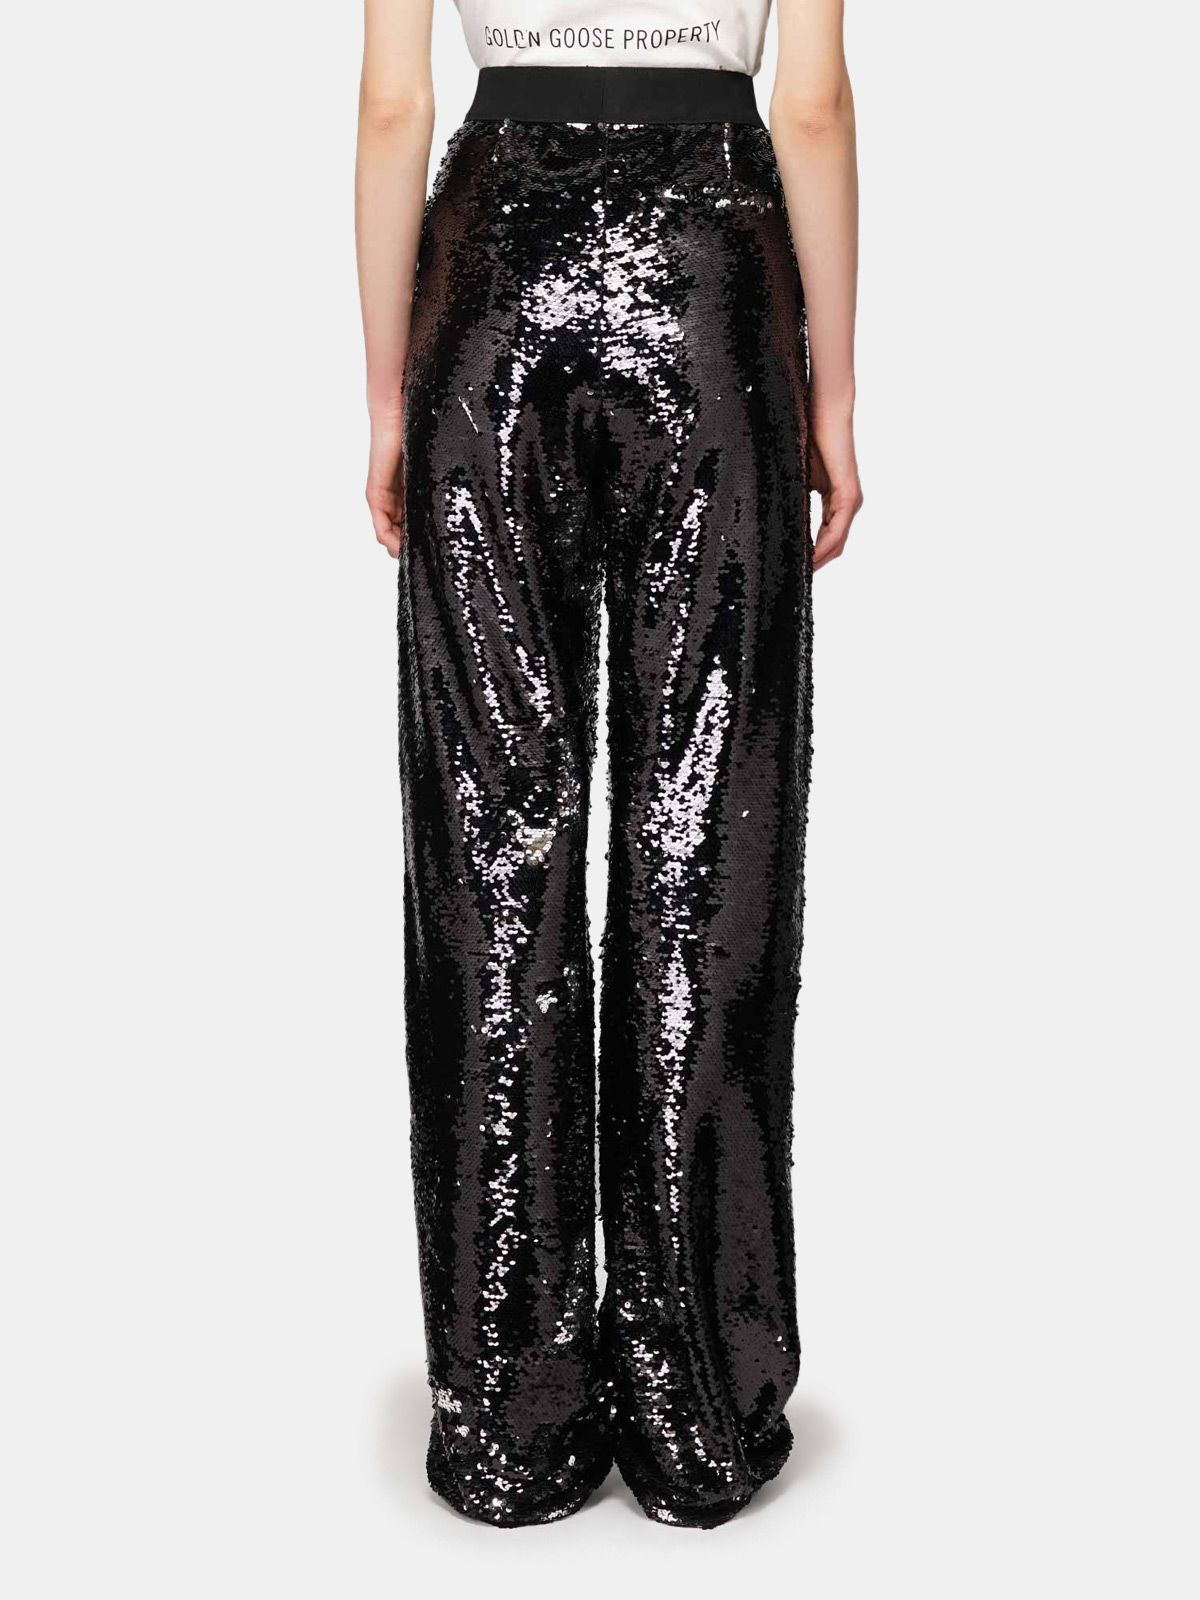 Golden Goose - Kelly tracksuit trousers with silver sequins in